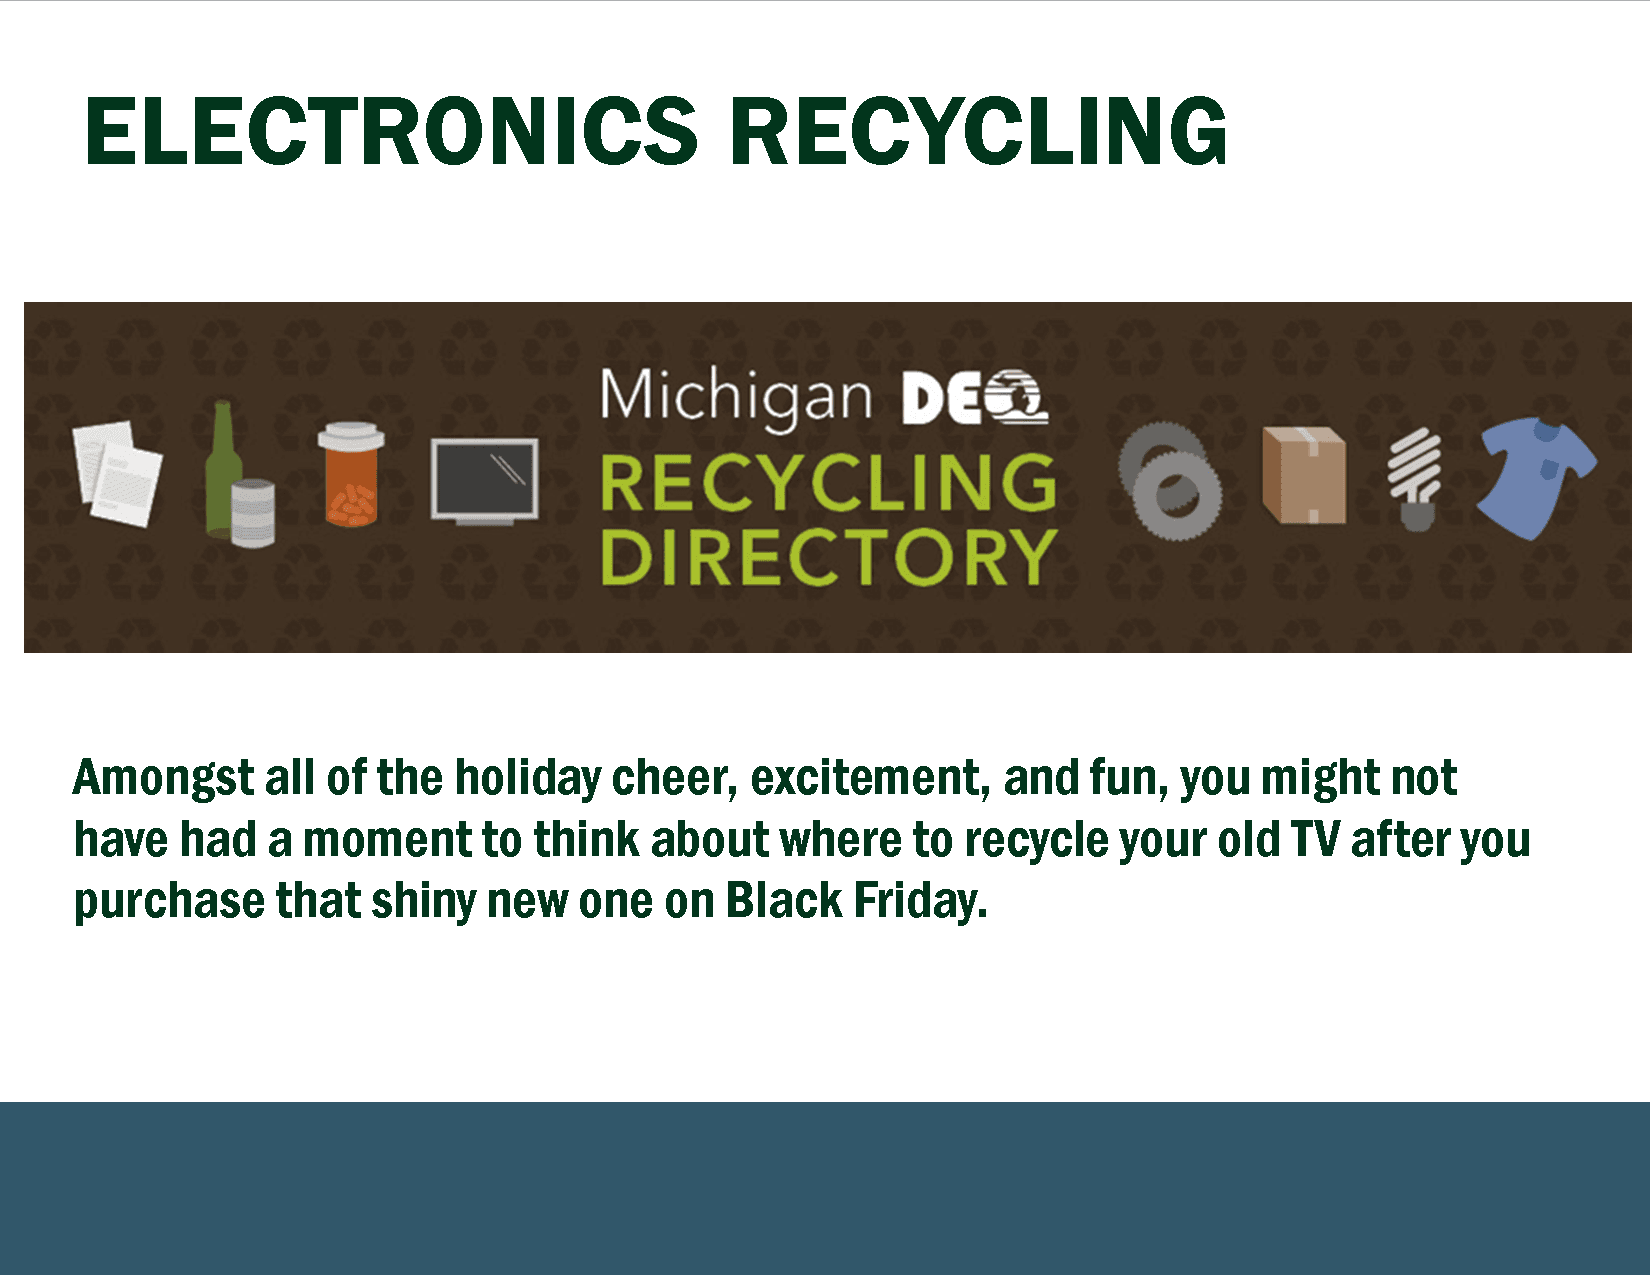 Michigan Recycling Directory DEQ items that may be recycled